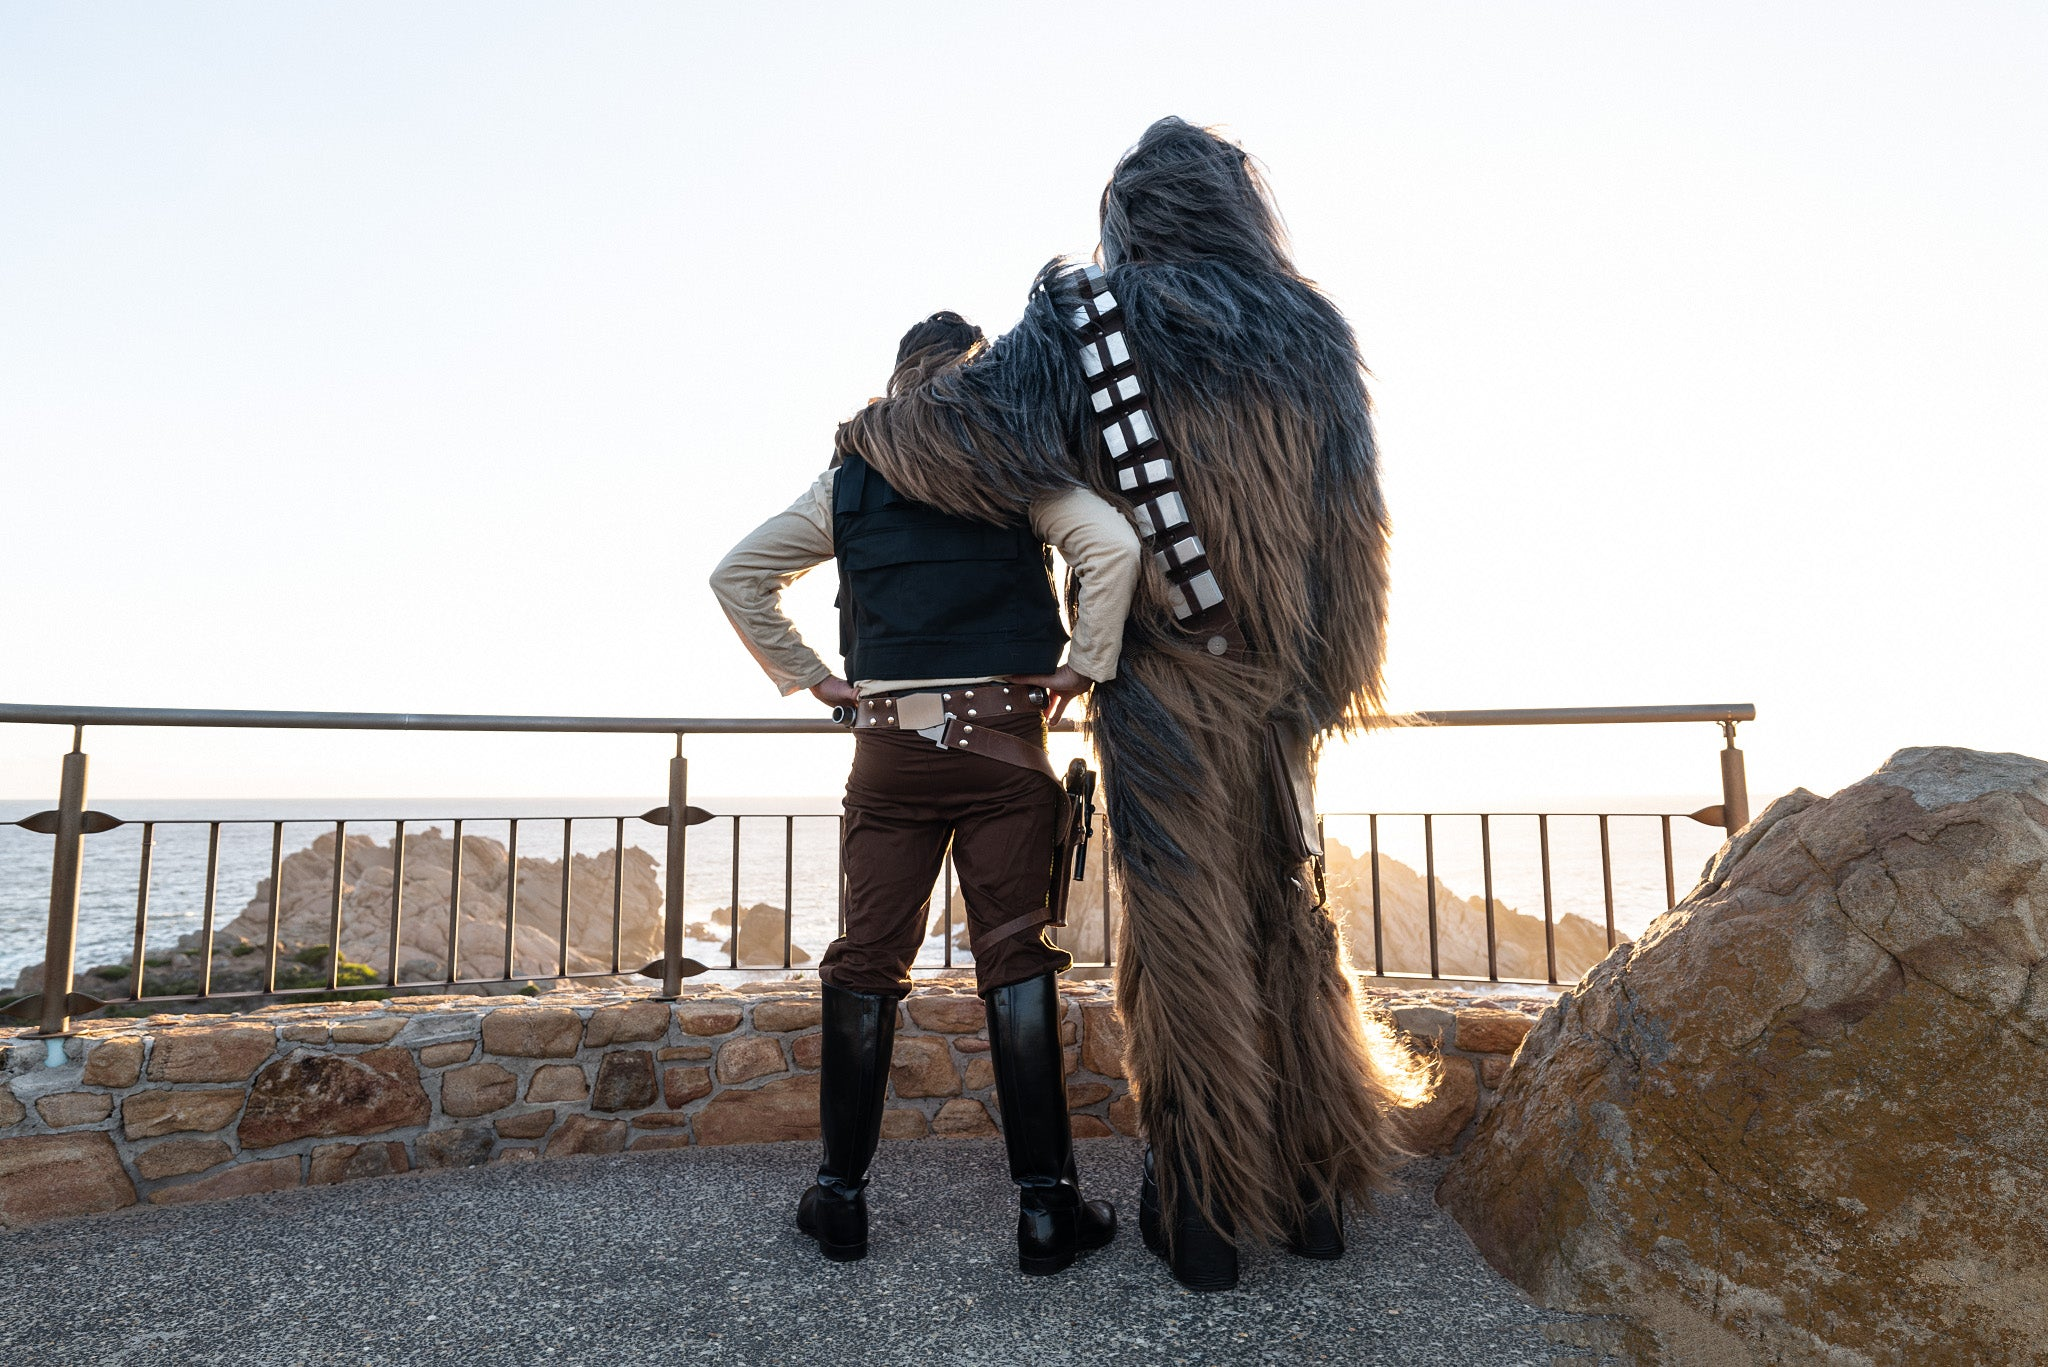 Han Solo and Chewie standing at Sugarloaf Rock looking at the sunset in the south west of Western Australia